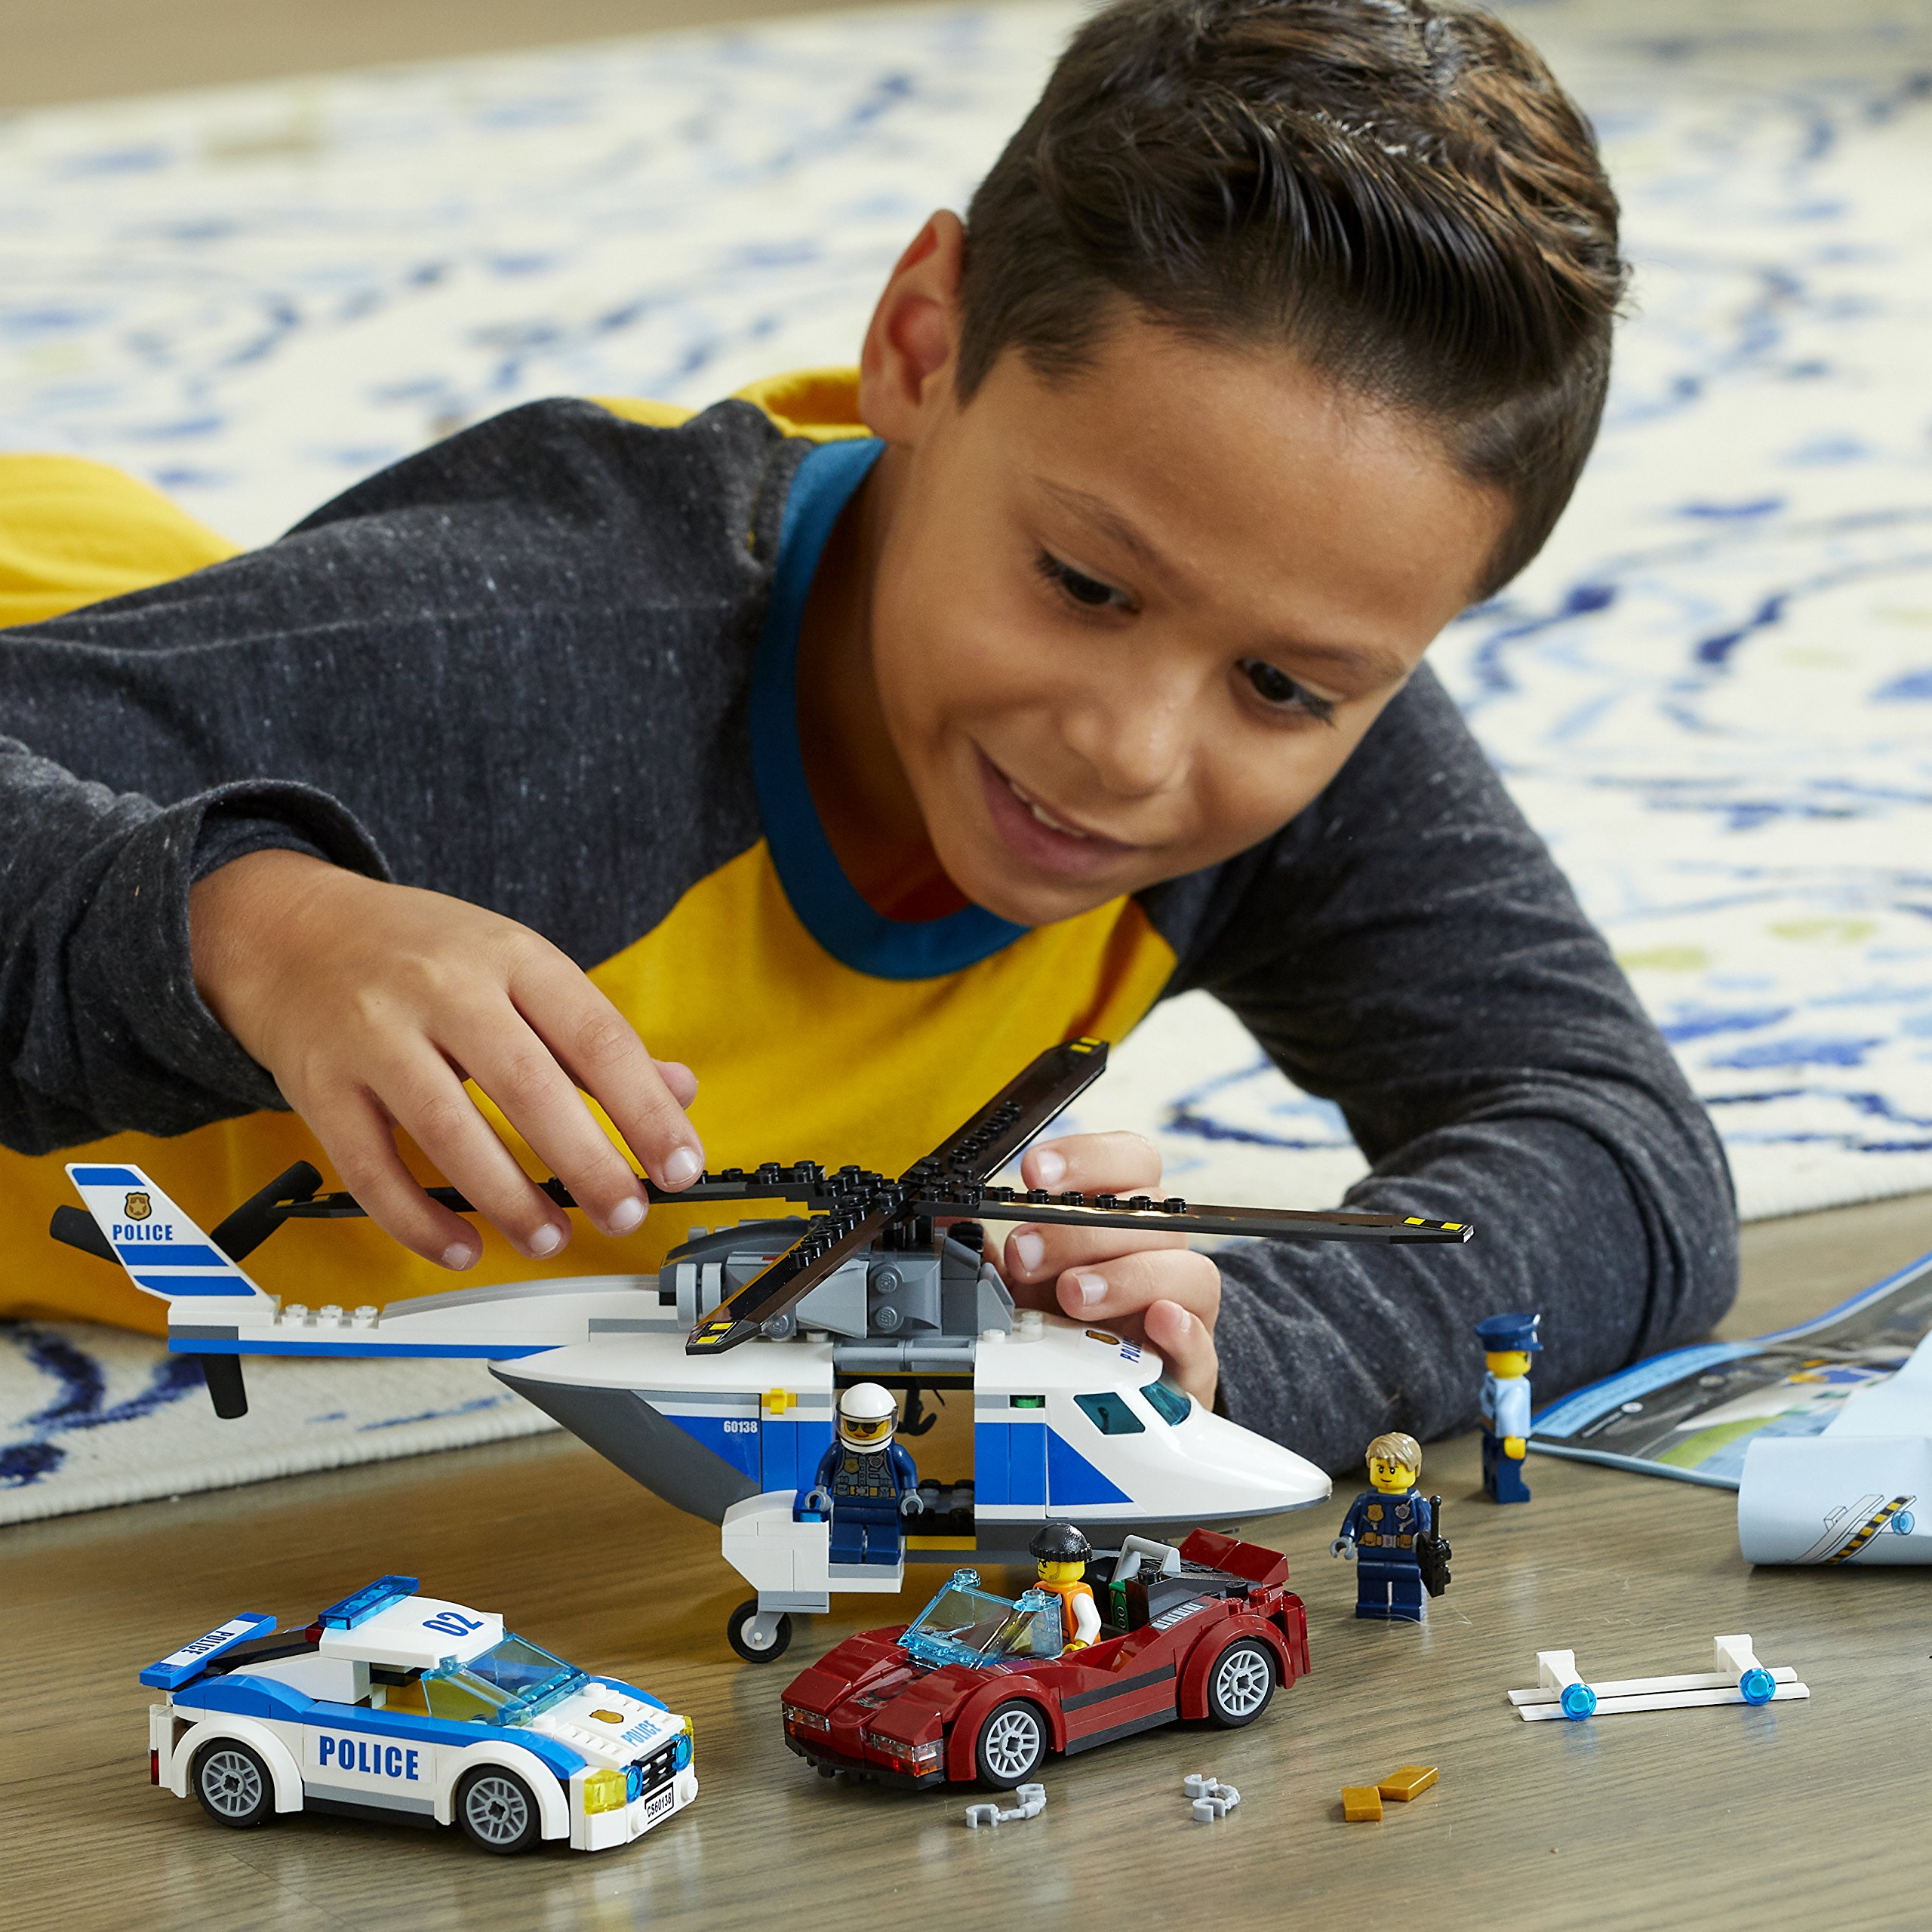 LEGO City Police High-Speed Chase 60138 Building Toy by LEGO (Image #4)